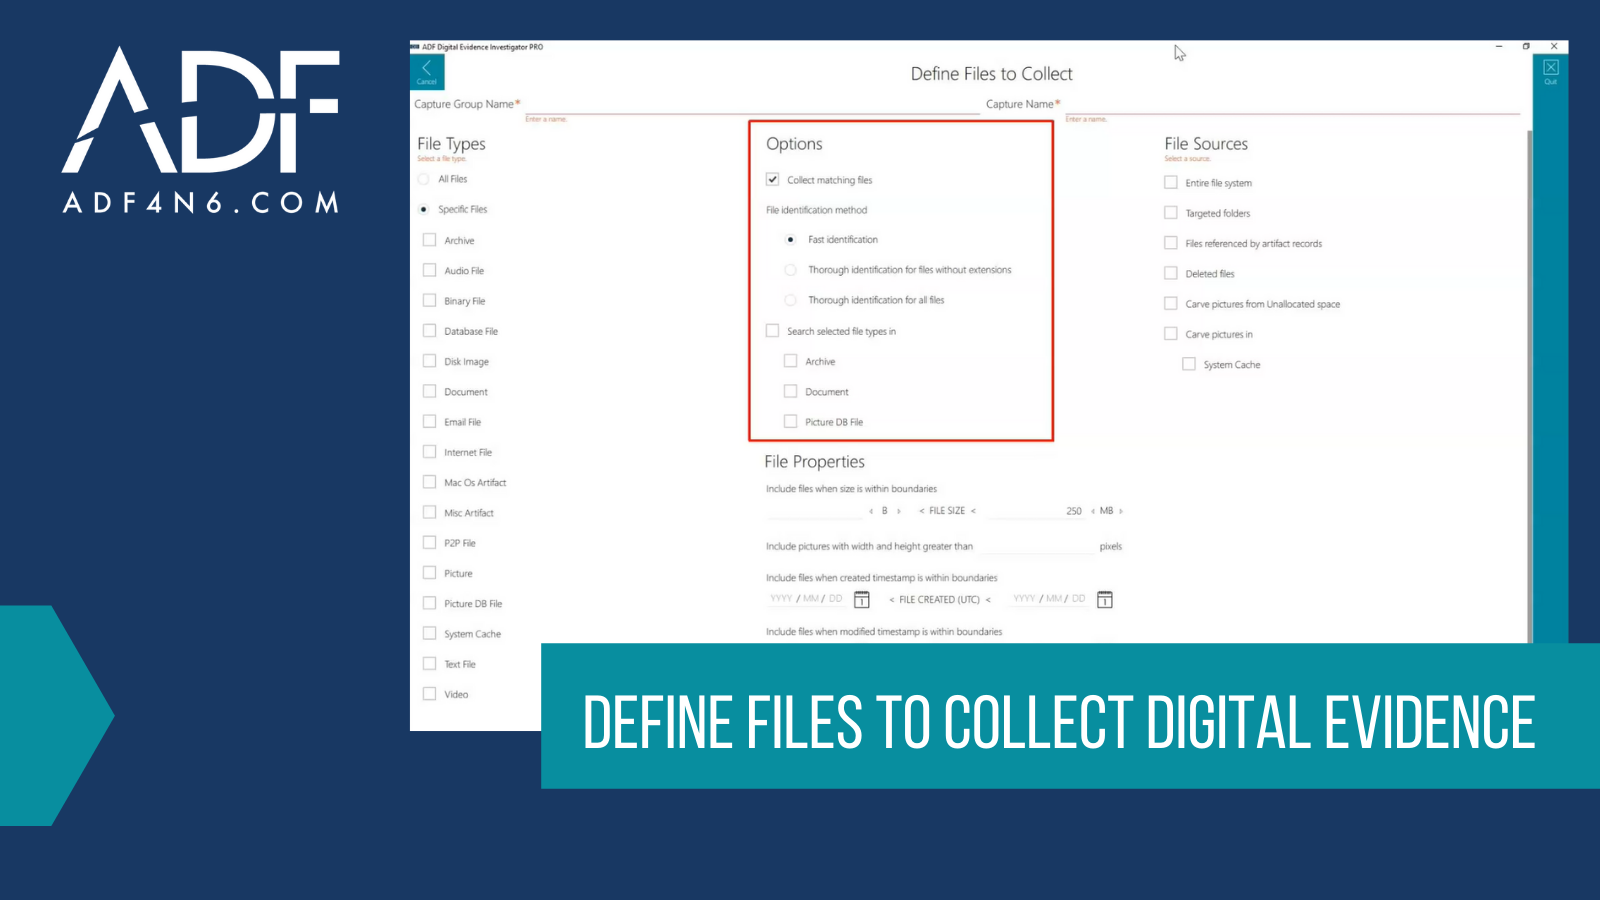 Define Files to Collect Digital Evidence